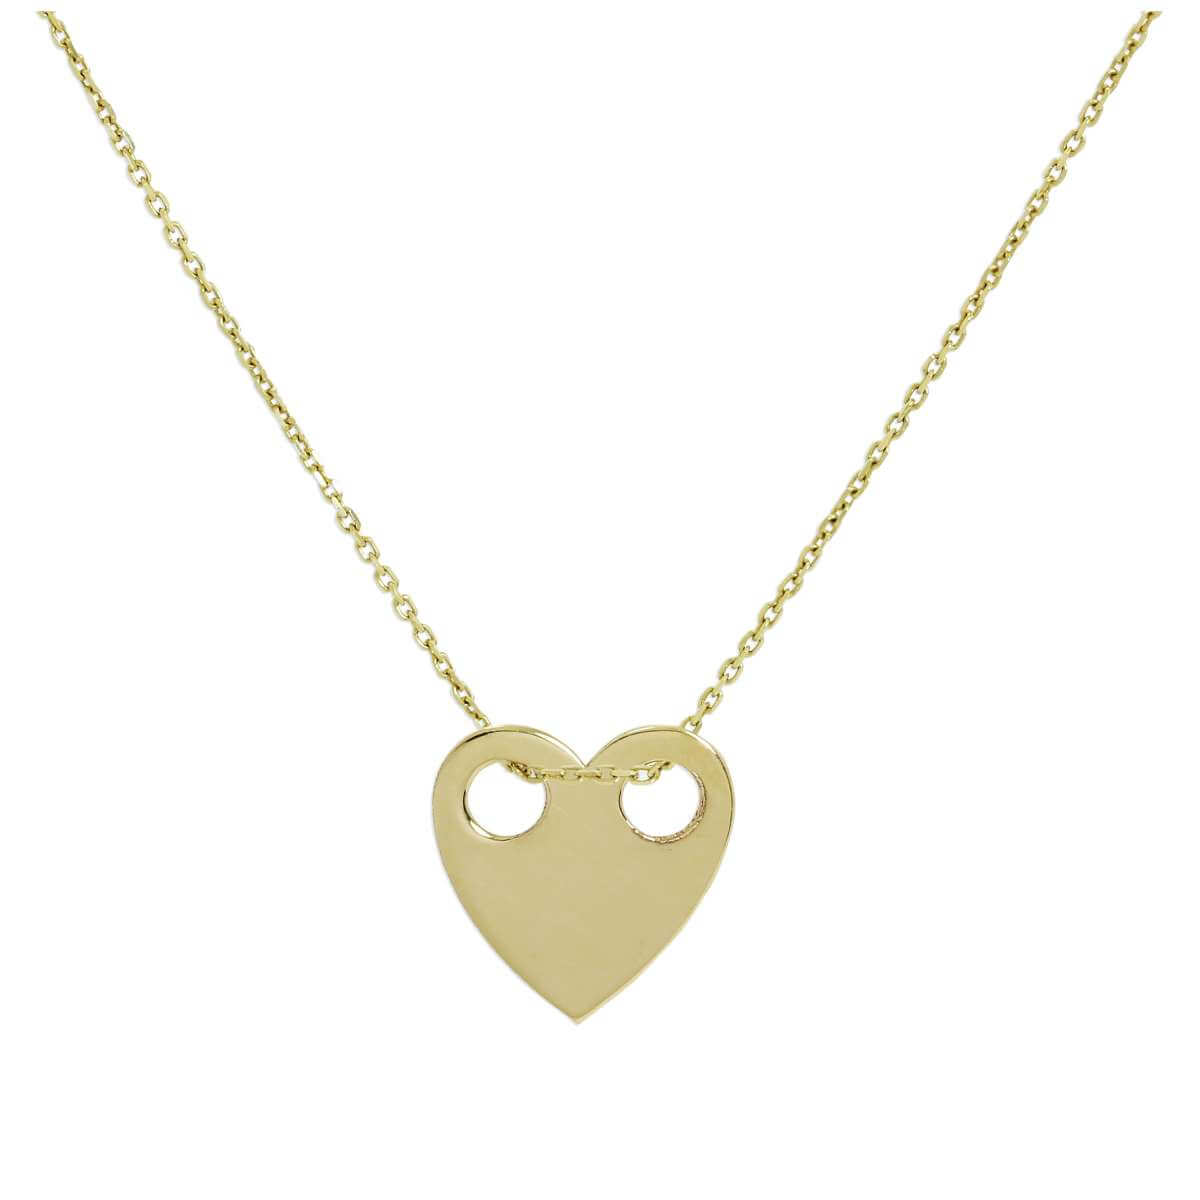 9ct Gold Engravable Flat Heart Pendant Necklace 16 - 20 Inches